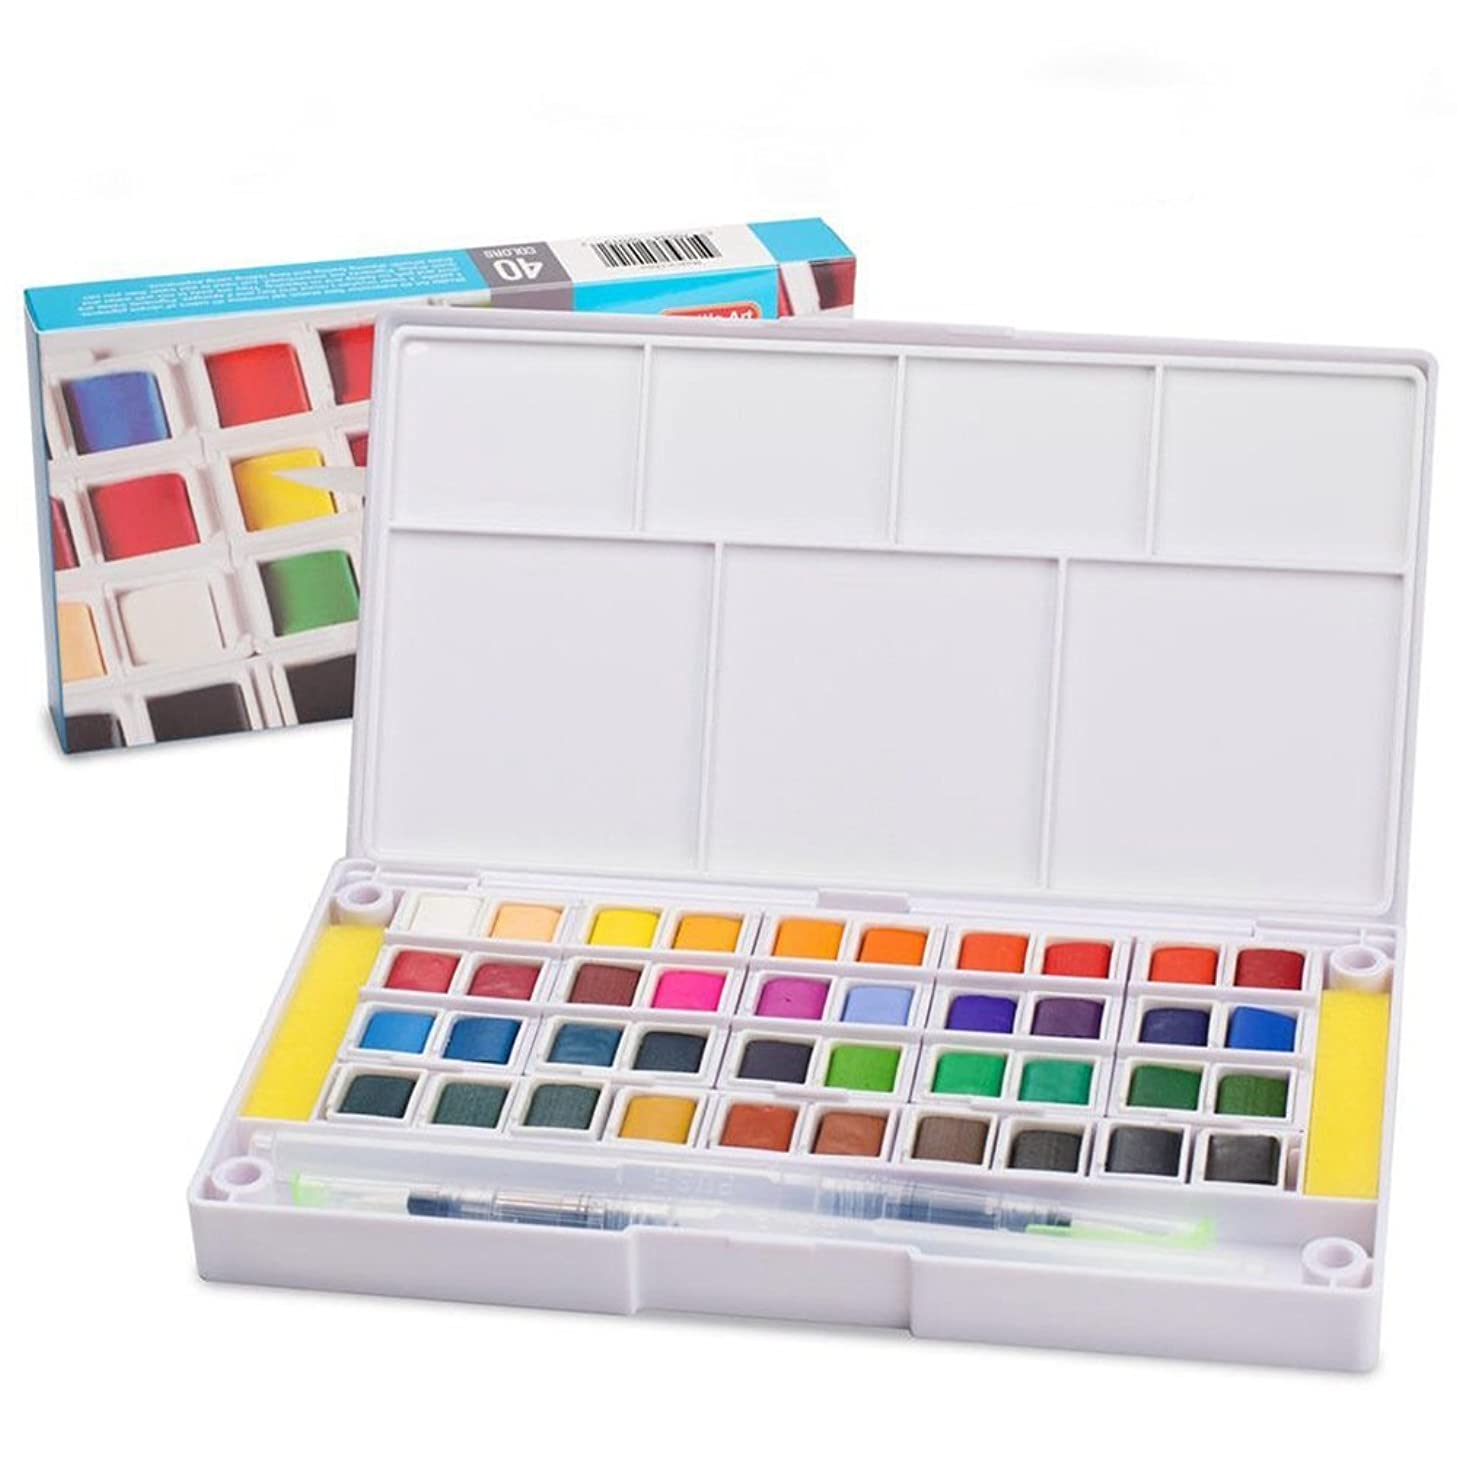 Watercolor Paint Set,40 Colors Watercolors Field Sketch Set with Brush - Travel Case Includes 2 Water Brushs - 2 Sponges - 1 Mixing Palette, Perfect for Painting